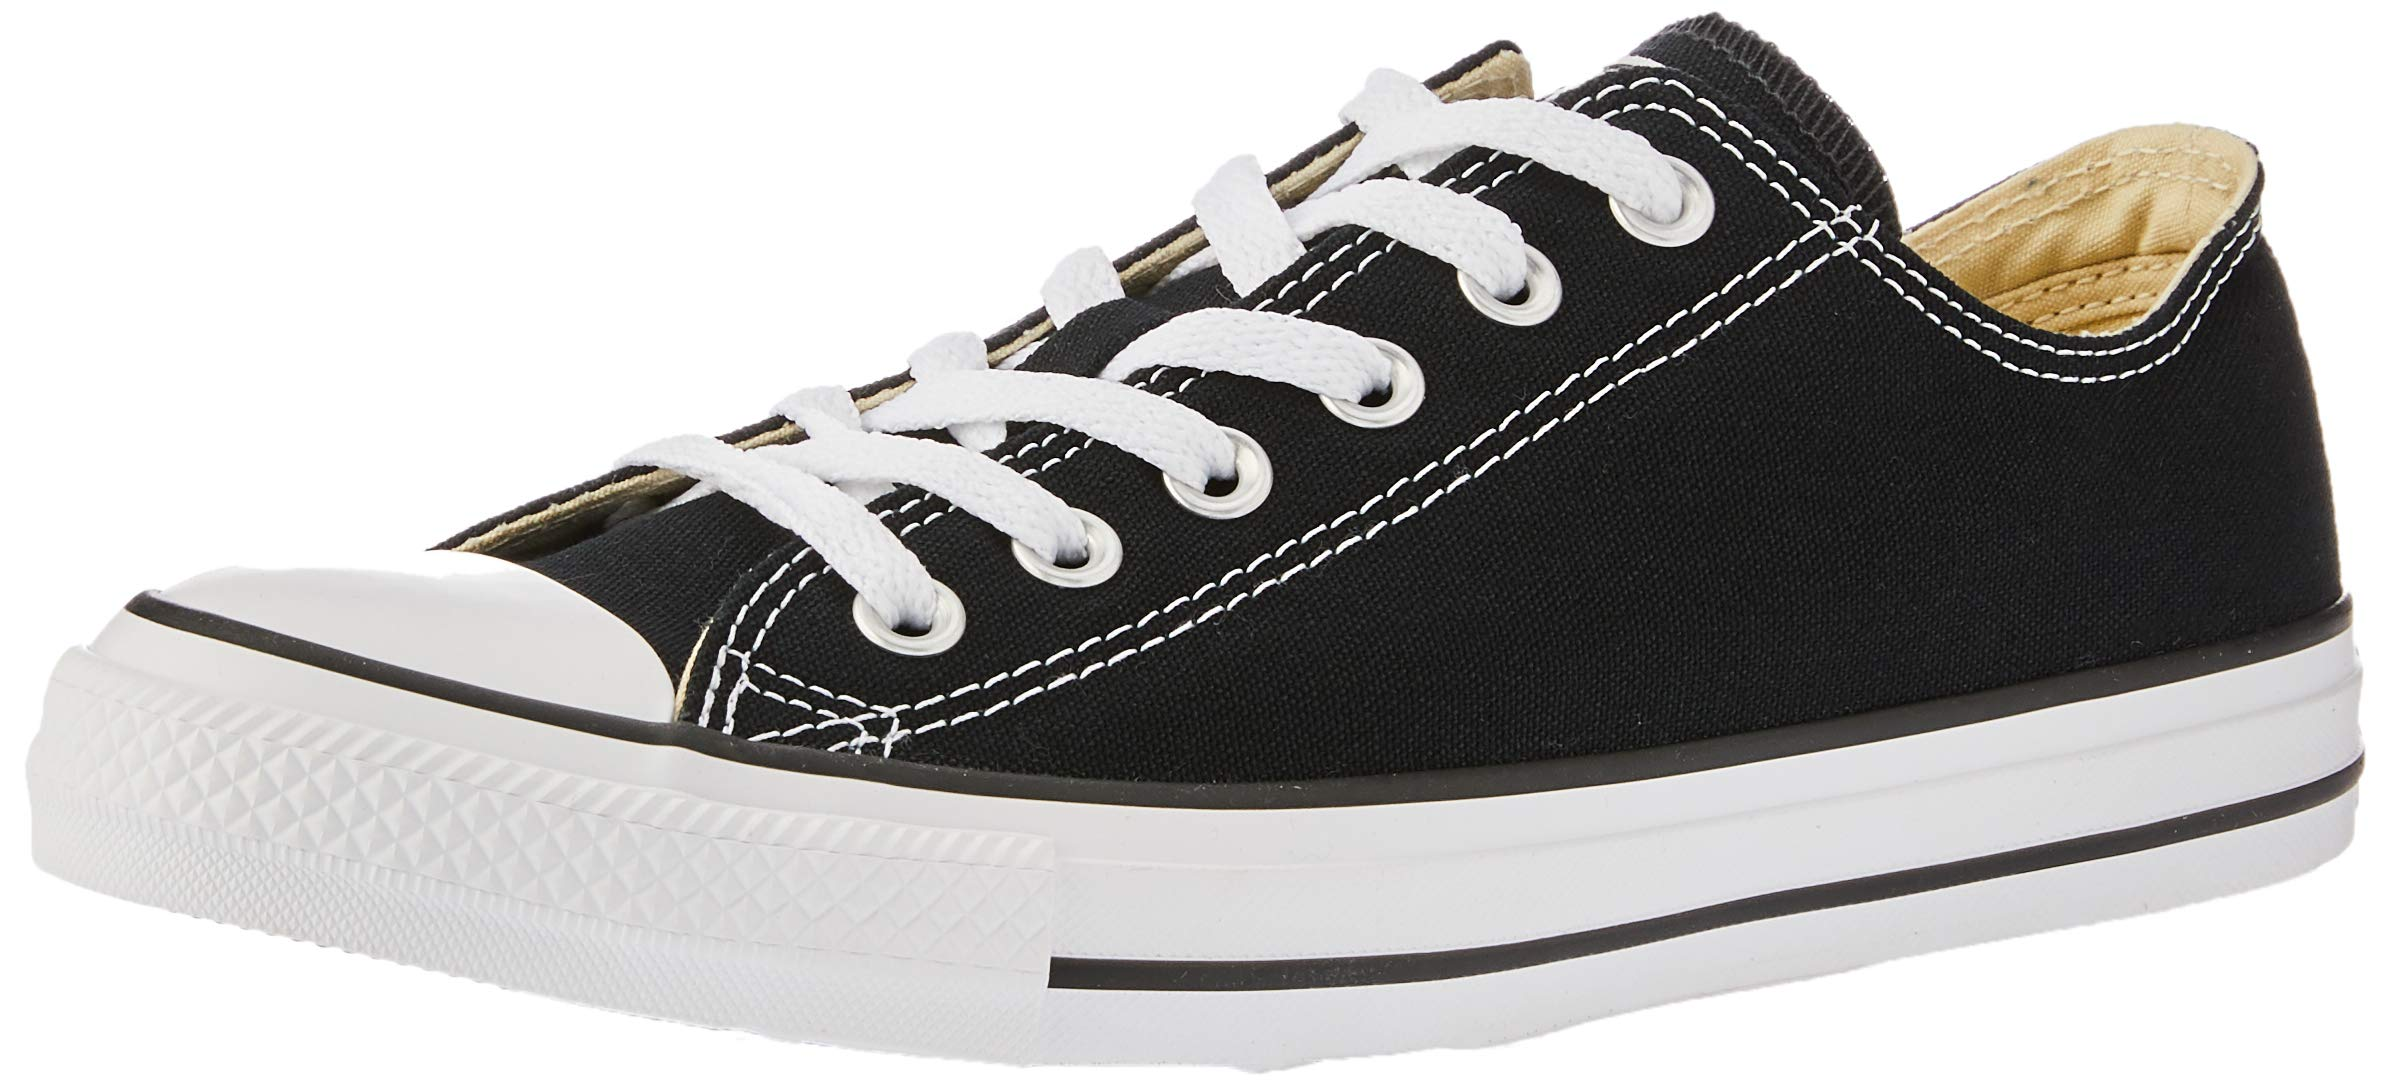 Converse Unisex Chuck Taylor All Star Low Top Sneakers, Black, 6 D(M) US